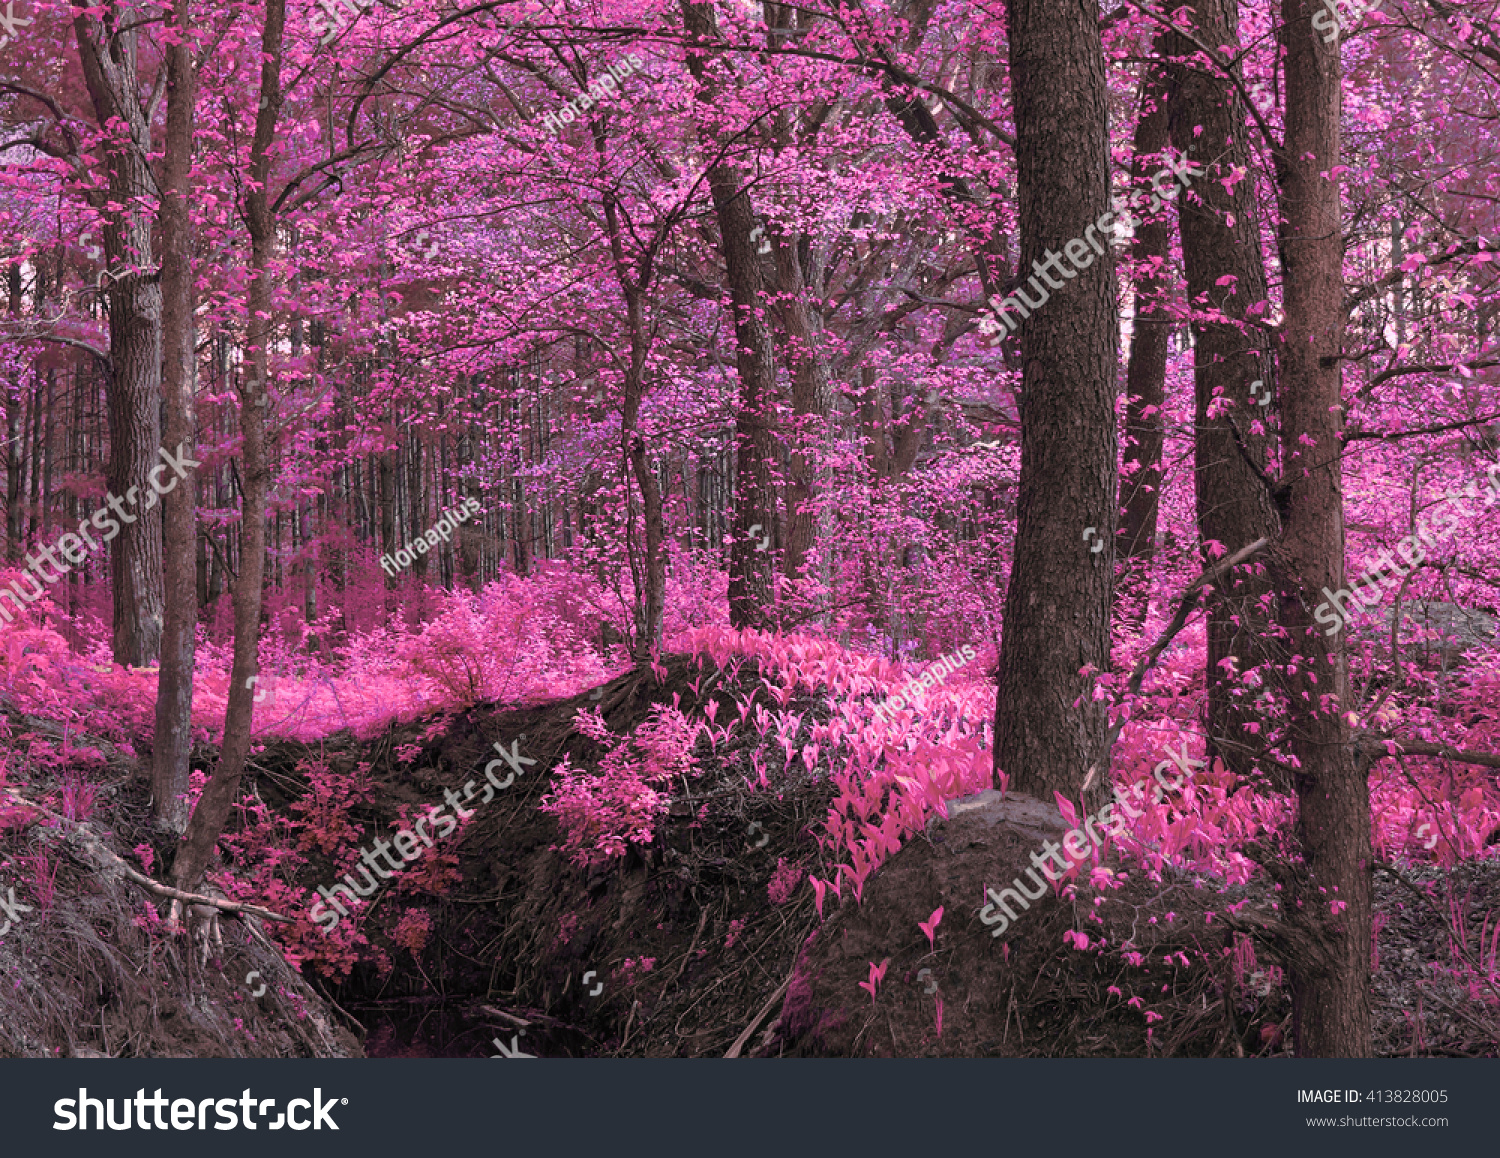 stock-photo-magic-wood-pink-purple-unusu